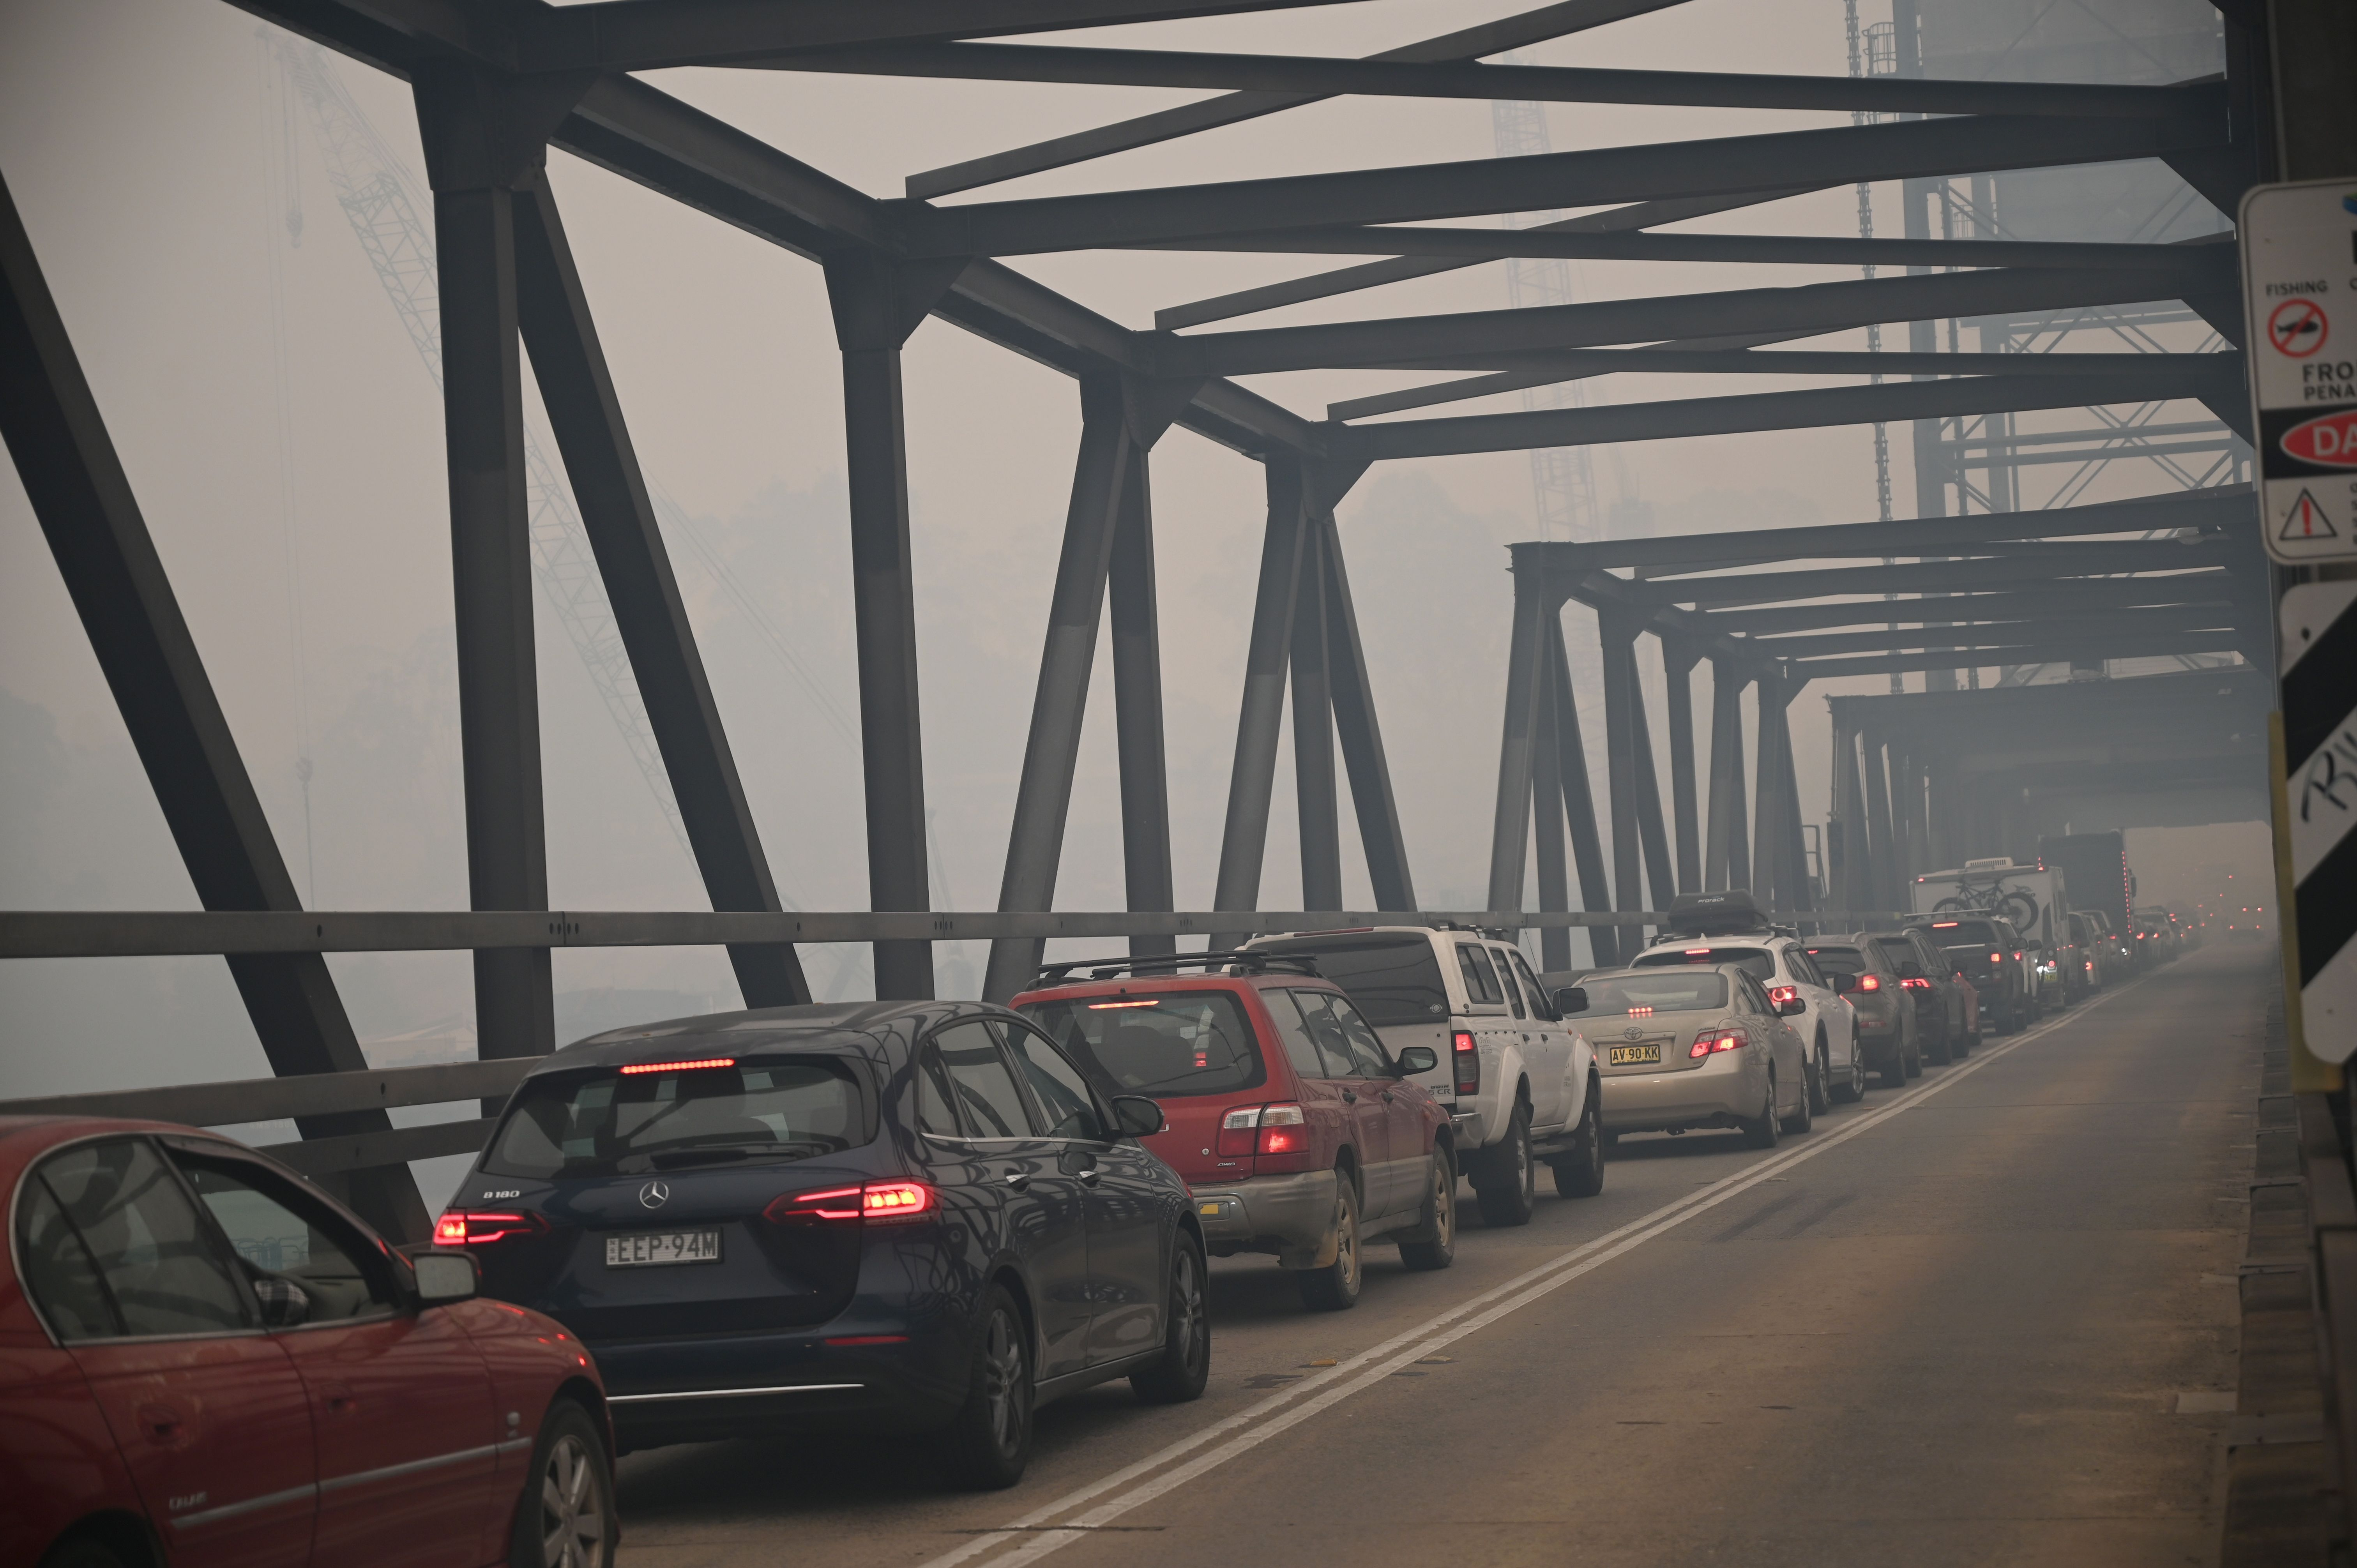 Thousands are trying to flee through choking smoke